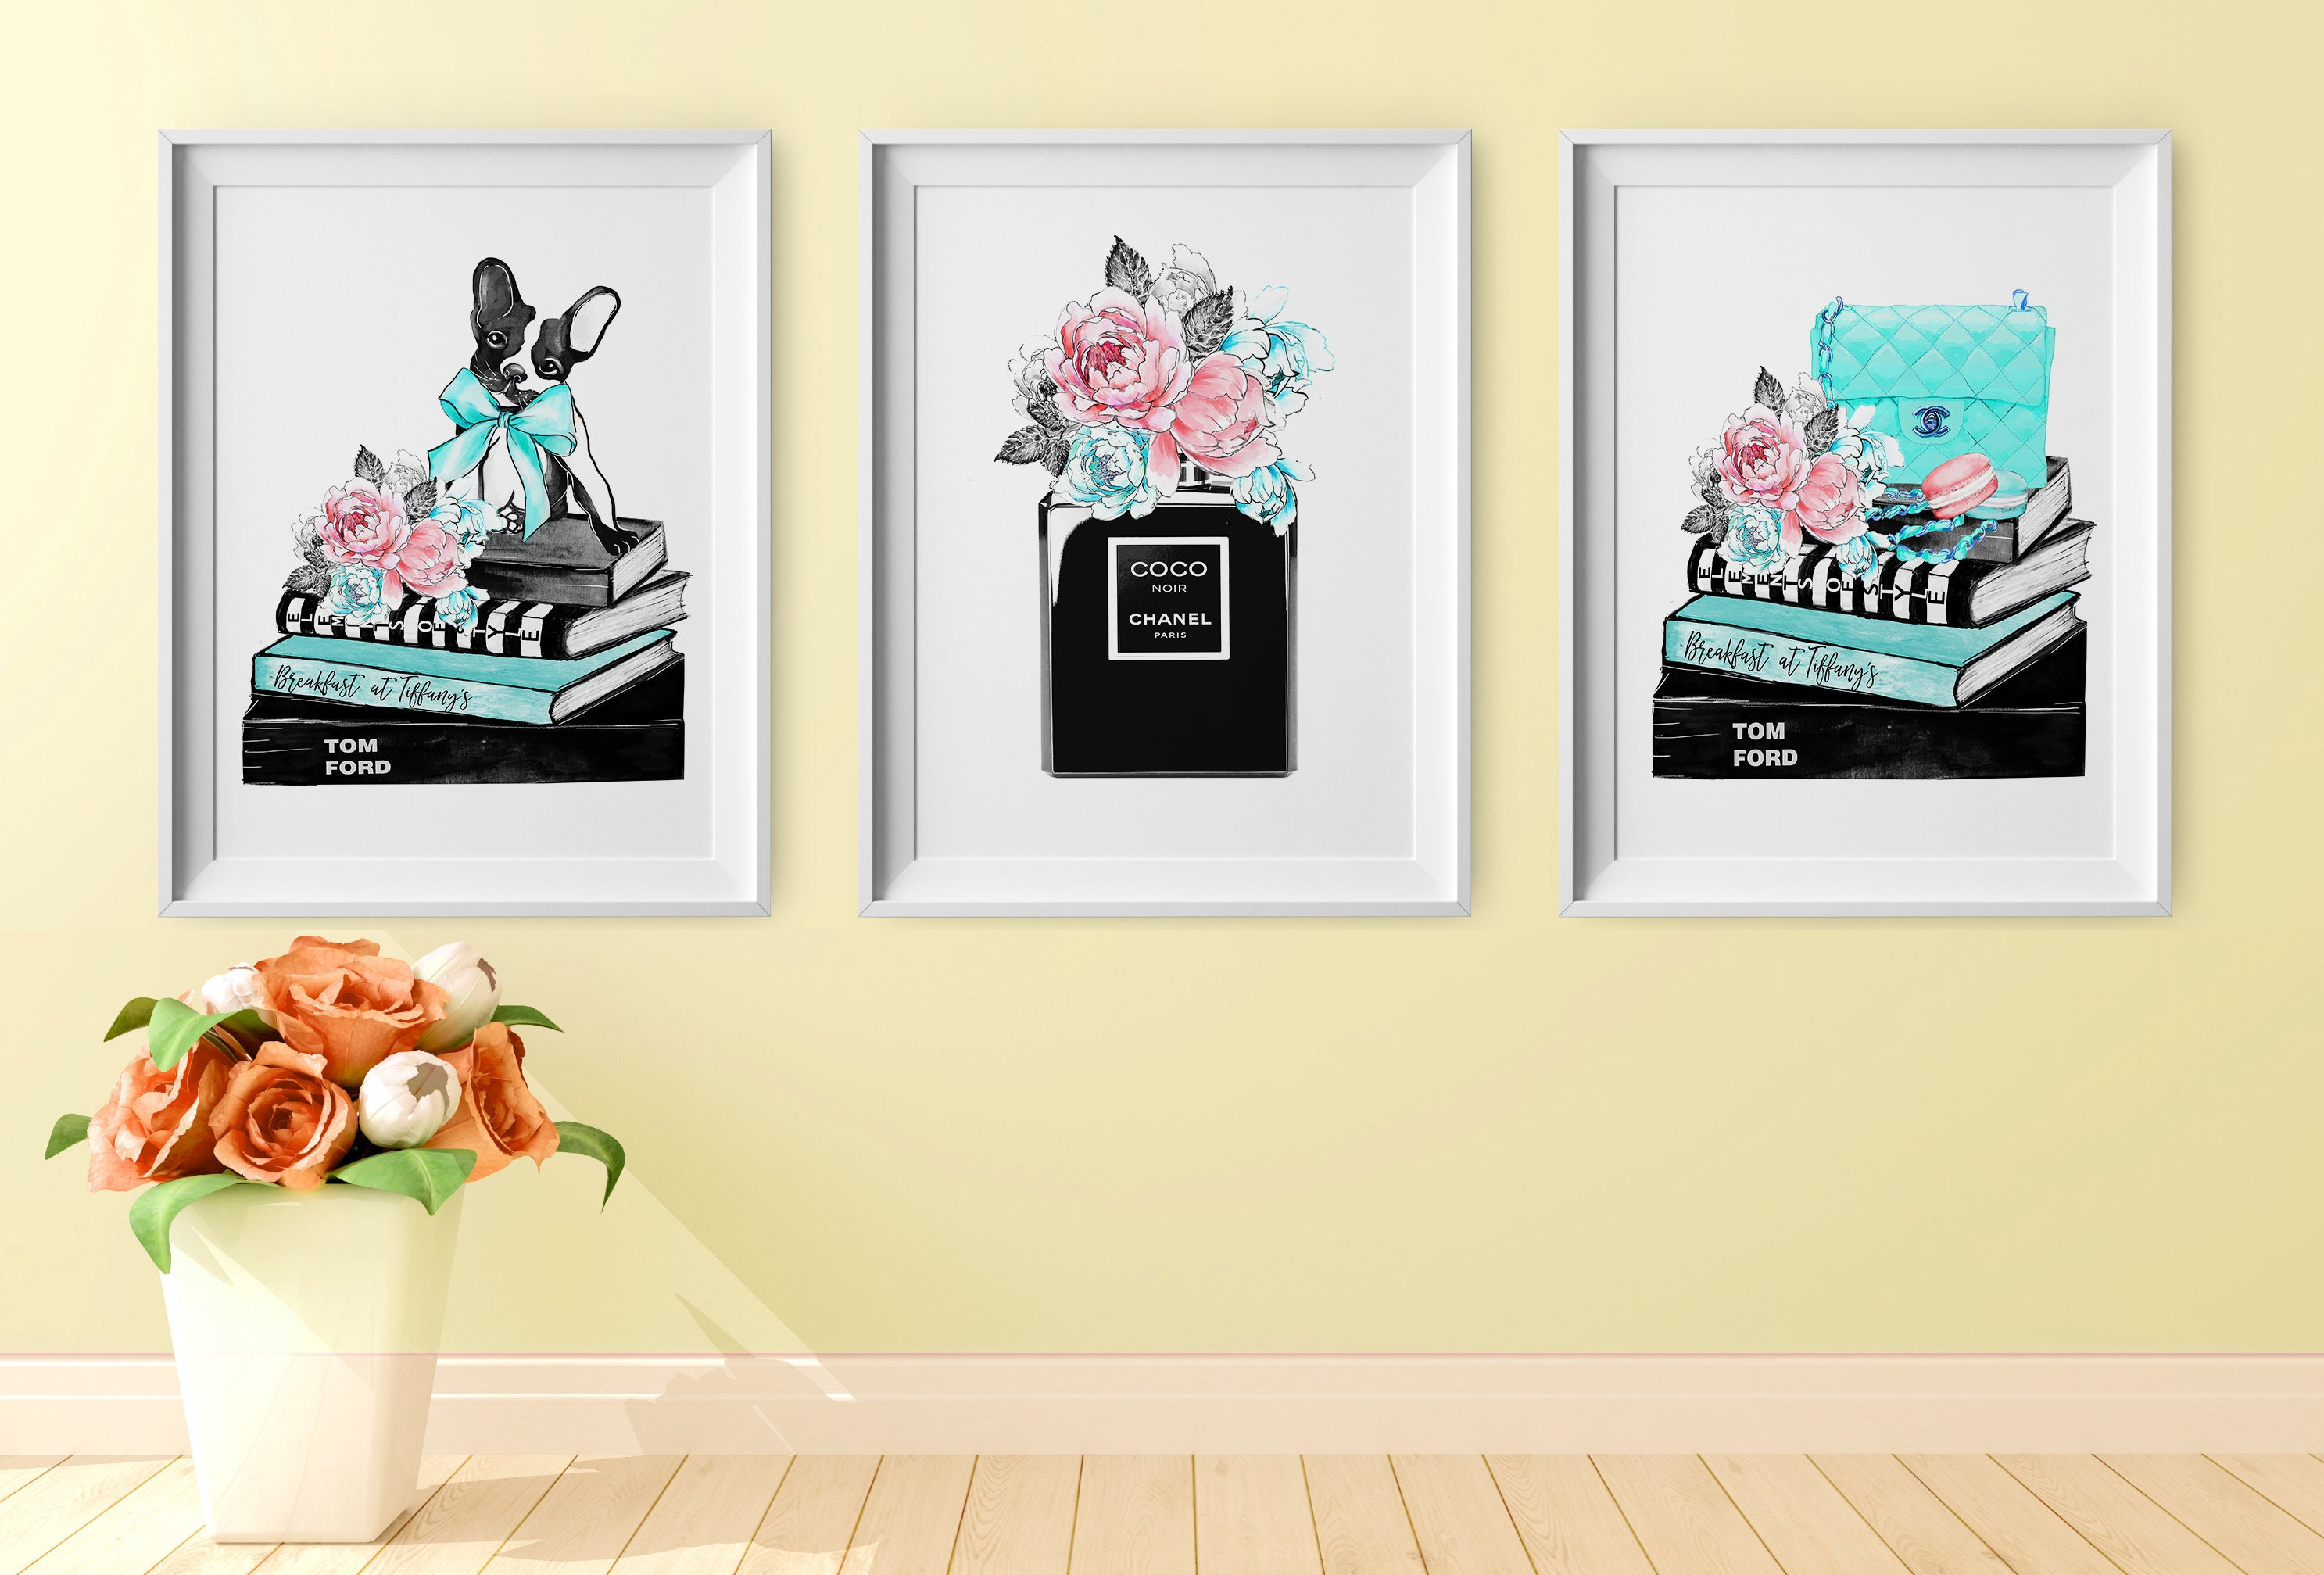 Set of 3 Print Fashion Prints Chanel Prints Tifffany Wall Art